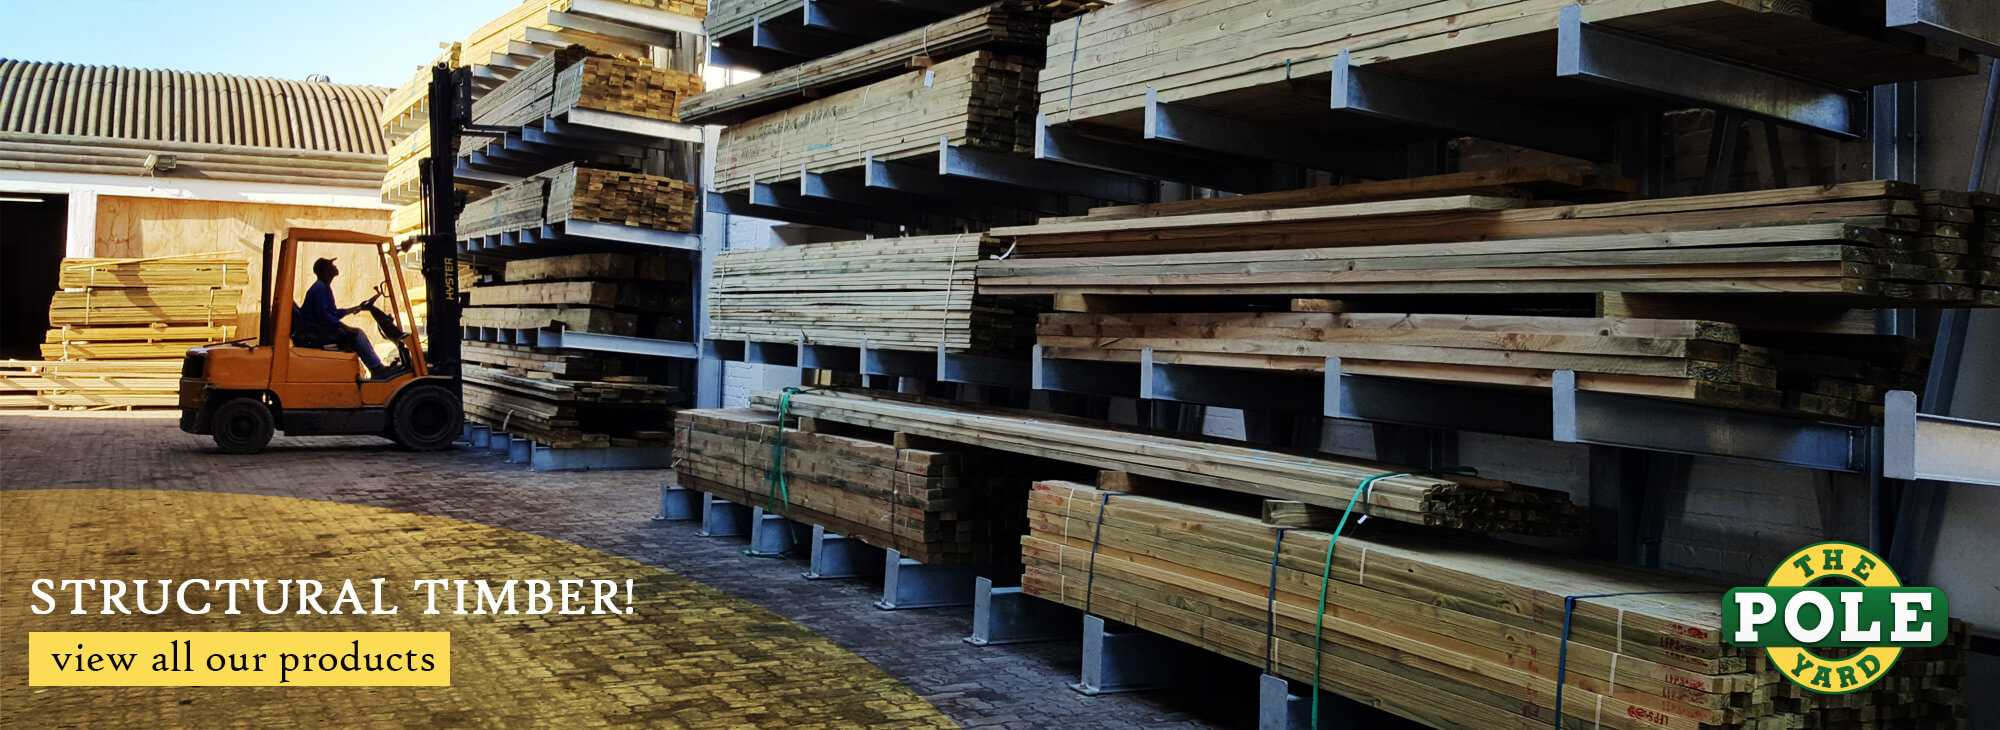 Timber available at The Pole Yard